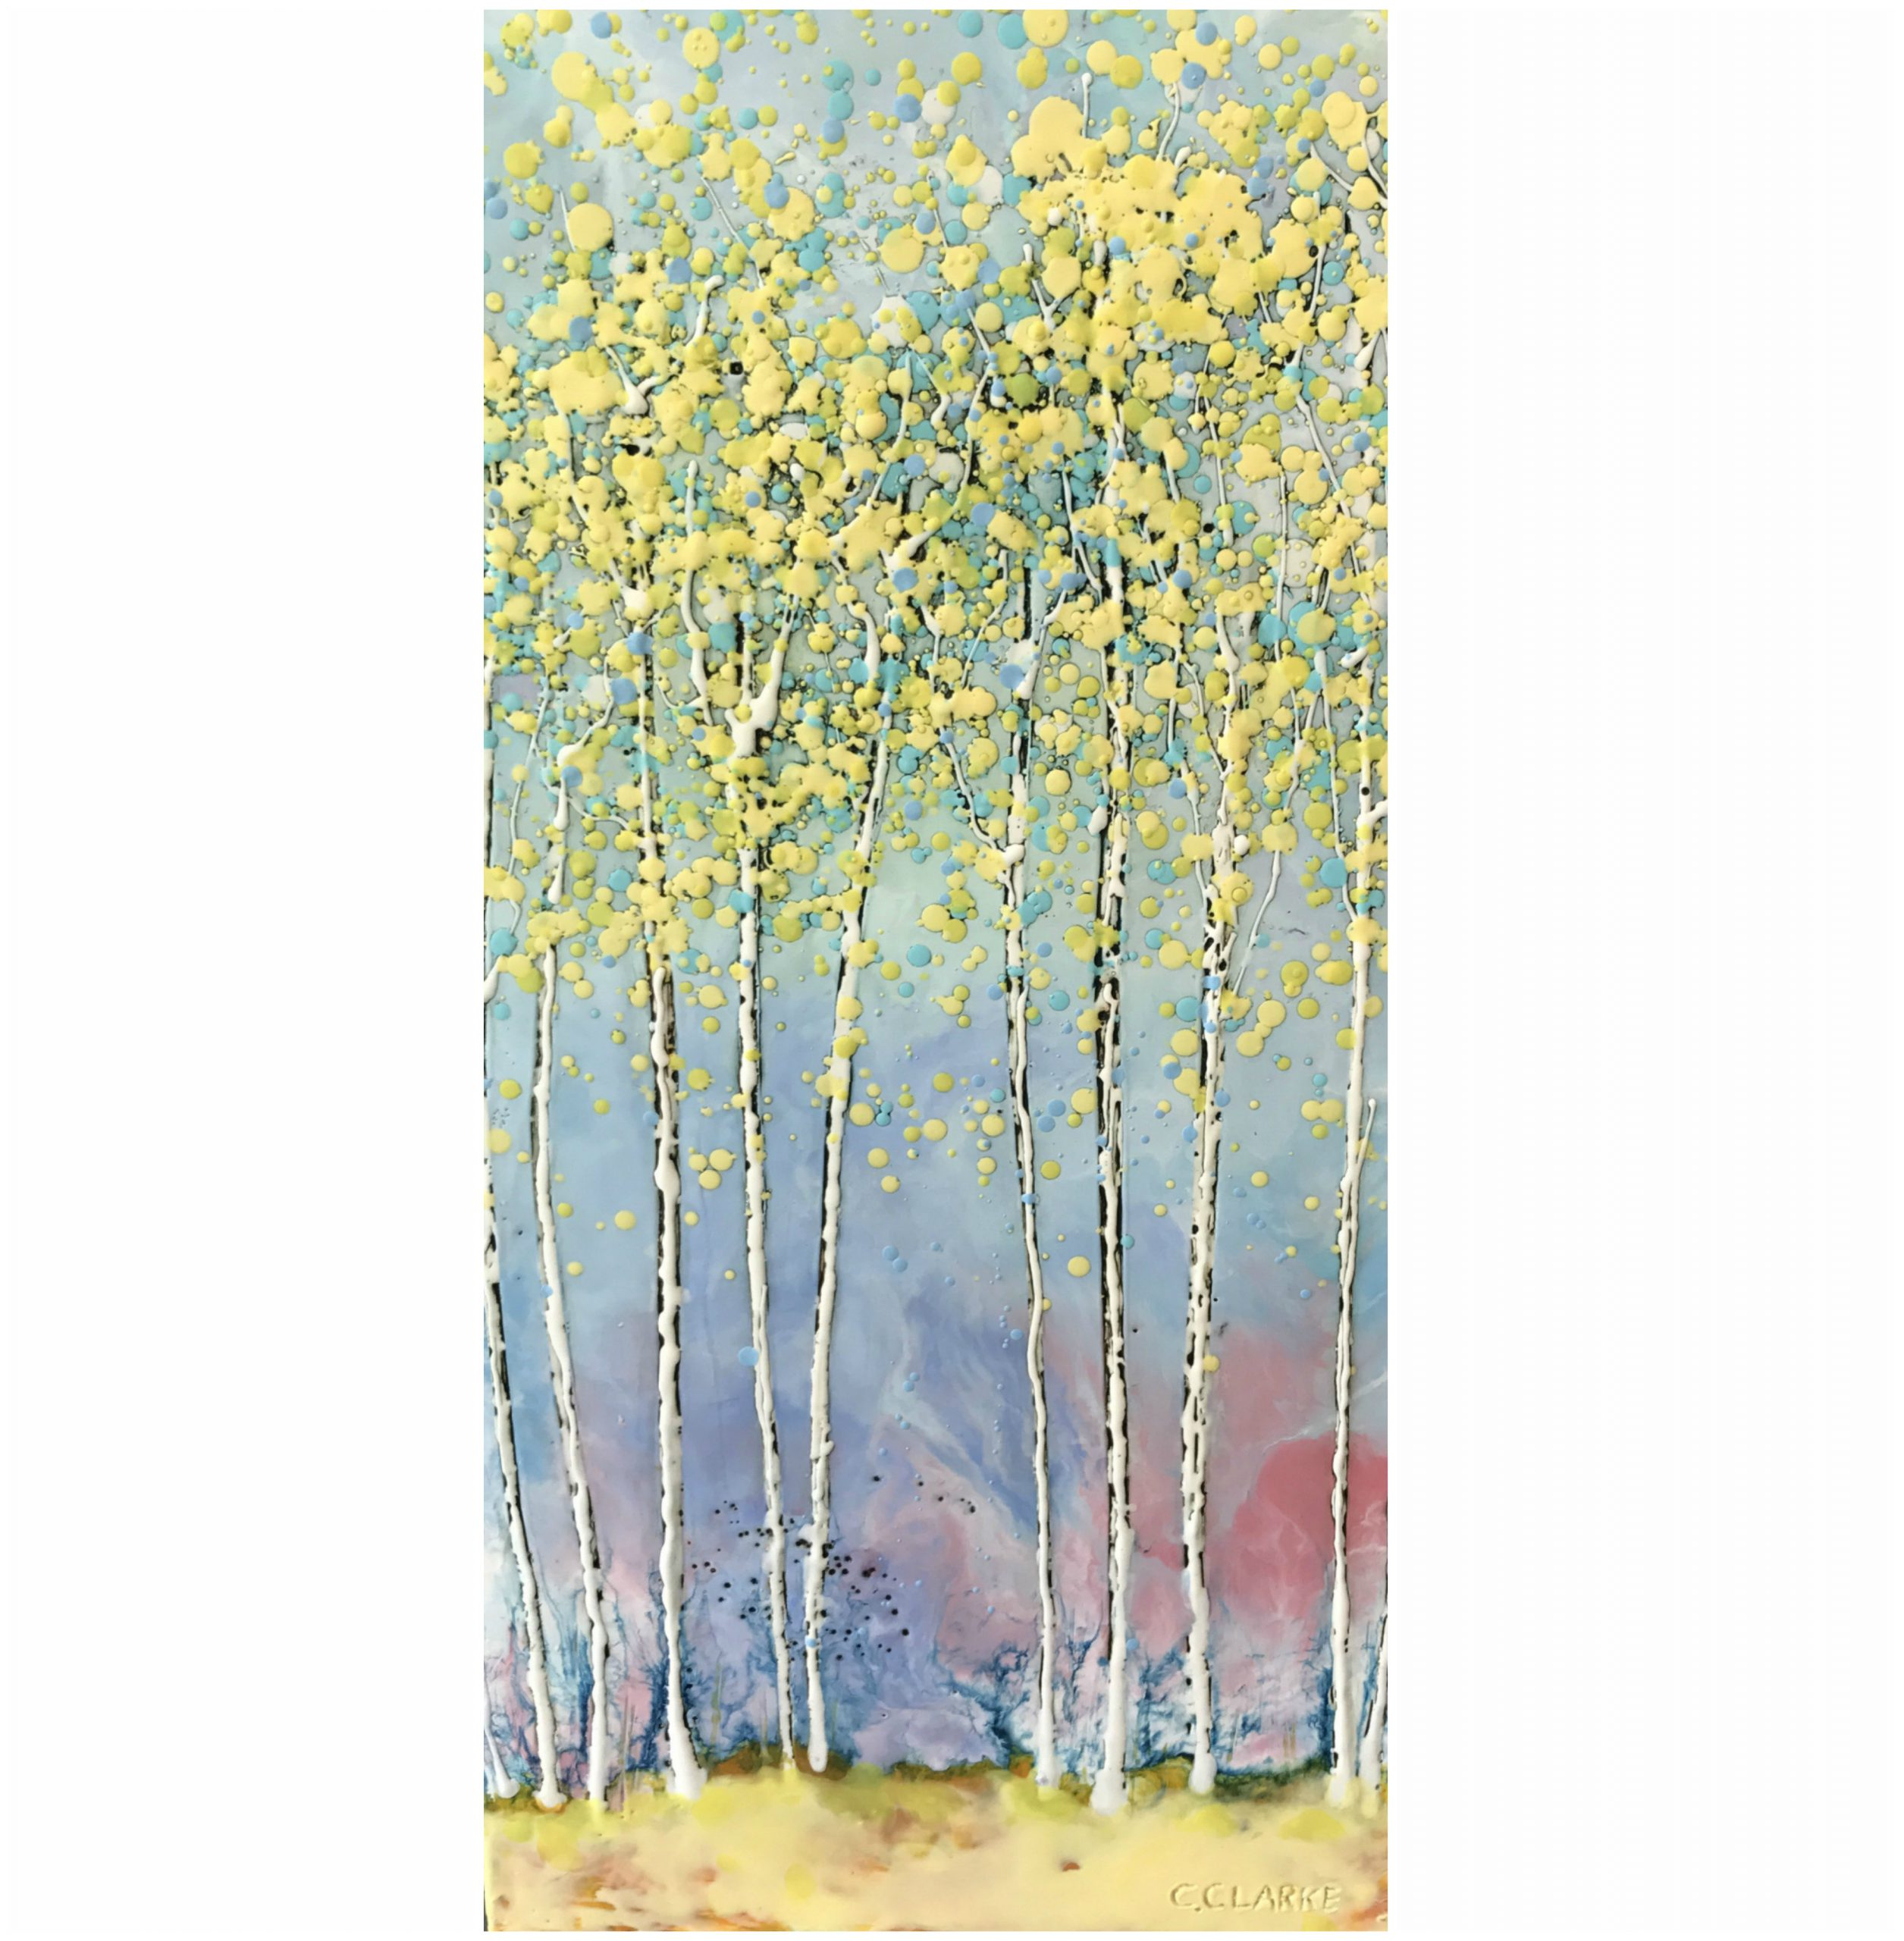 New Horizon, encaustic tree painting by Catharine Clarke   Effusion Art Gallery + Cast Glass Studio, Invermere BC